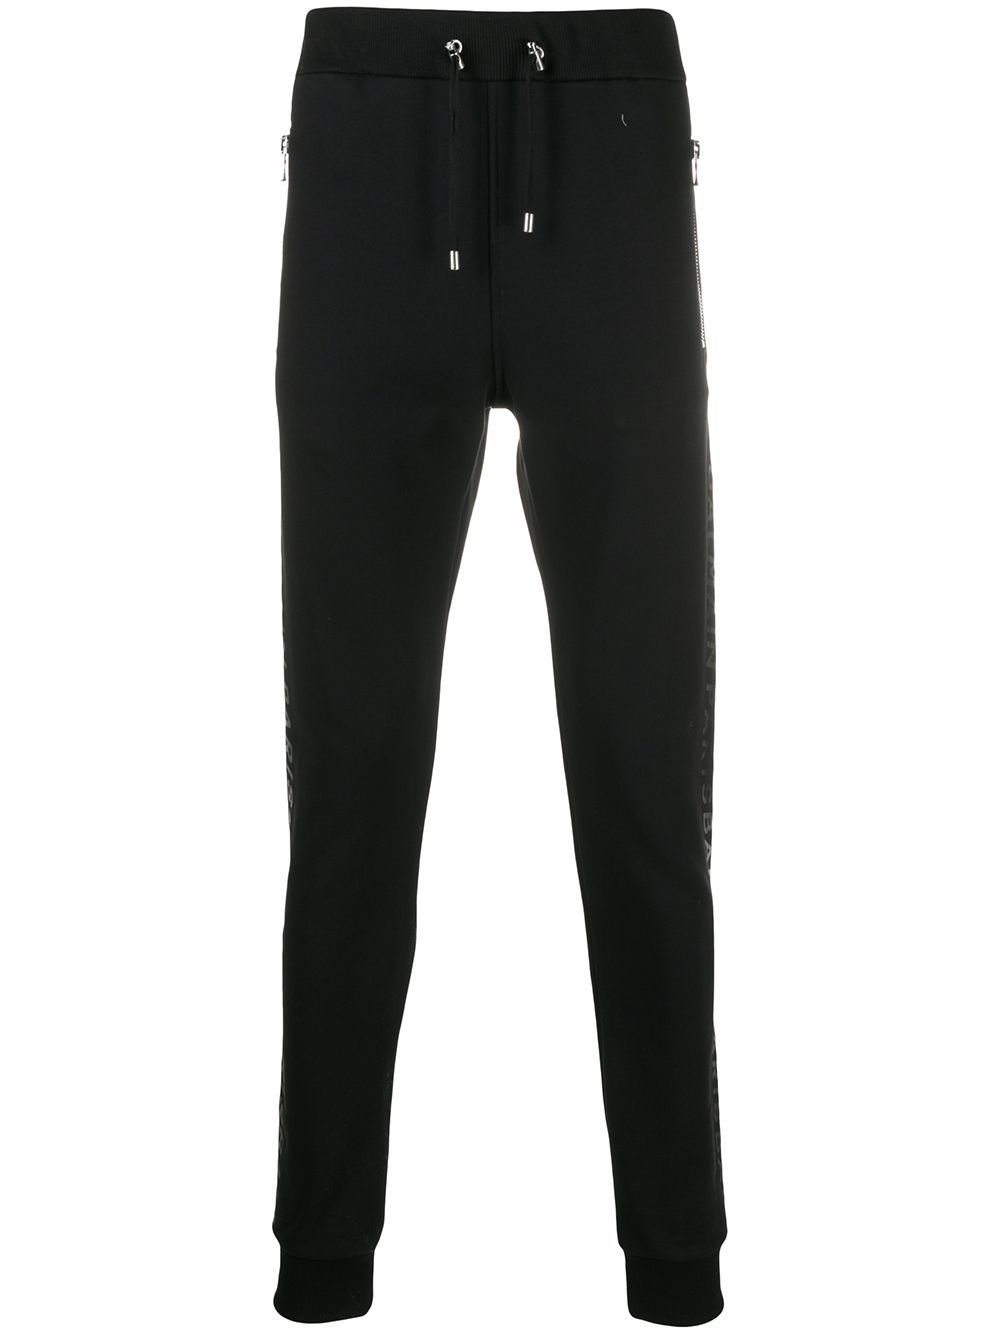 BALMAIN Foil Sweatpants Black - Maison De Fashion